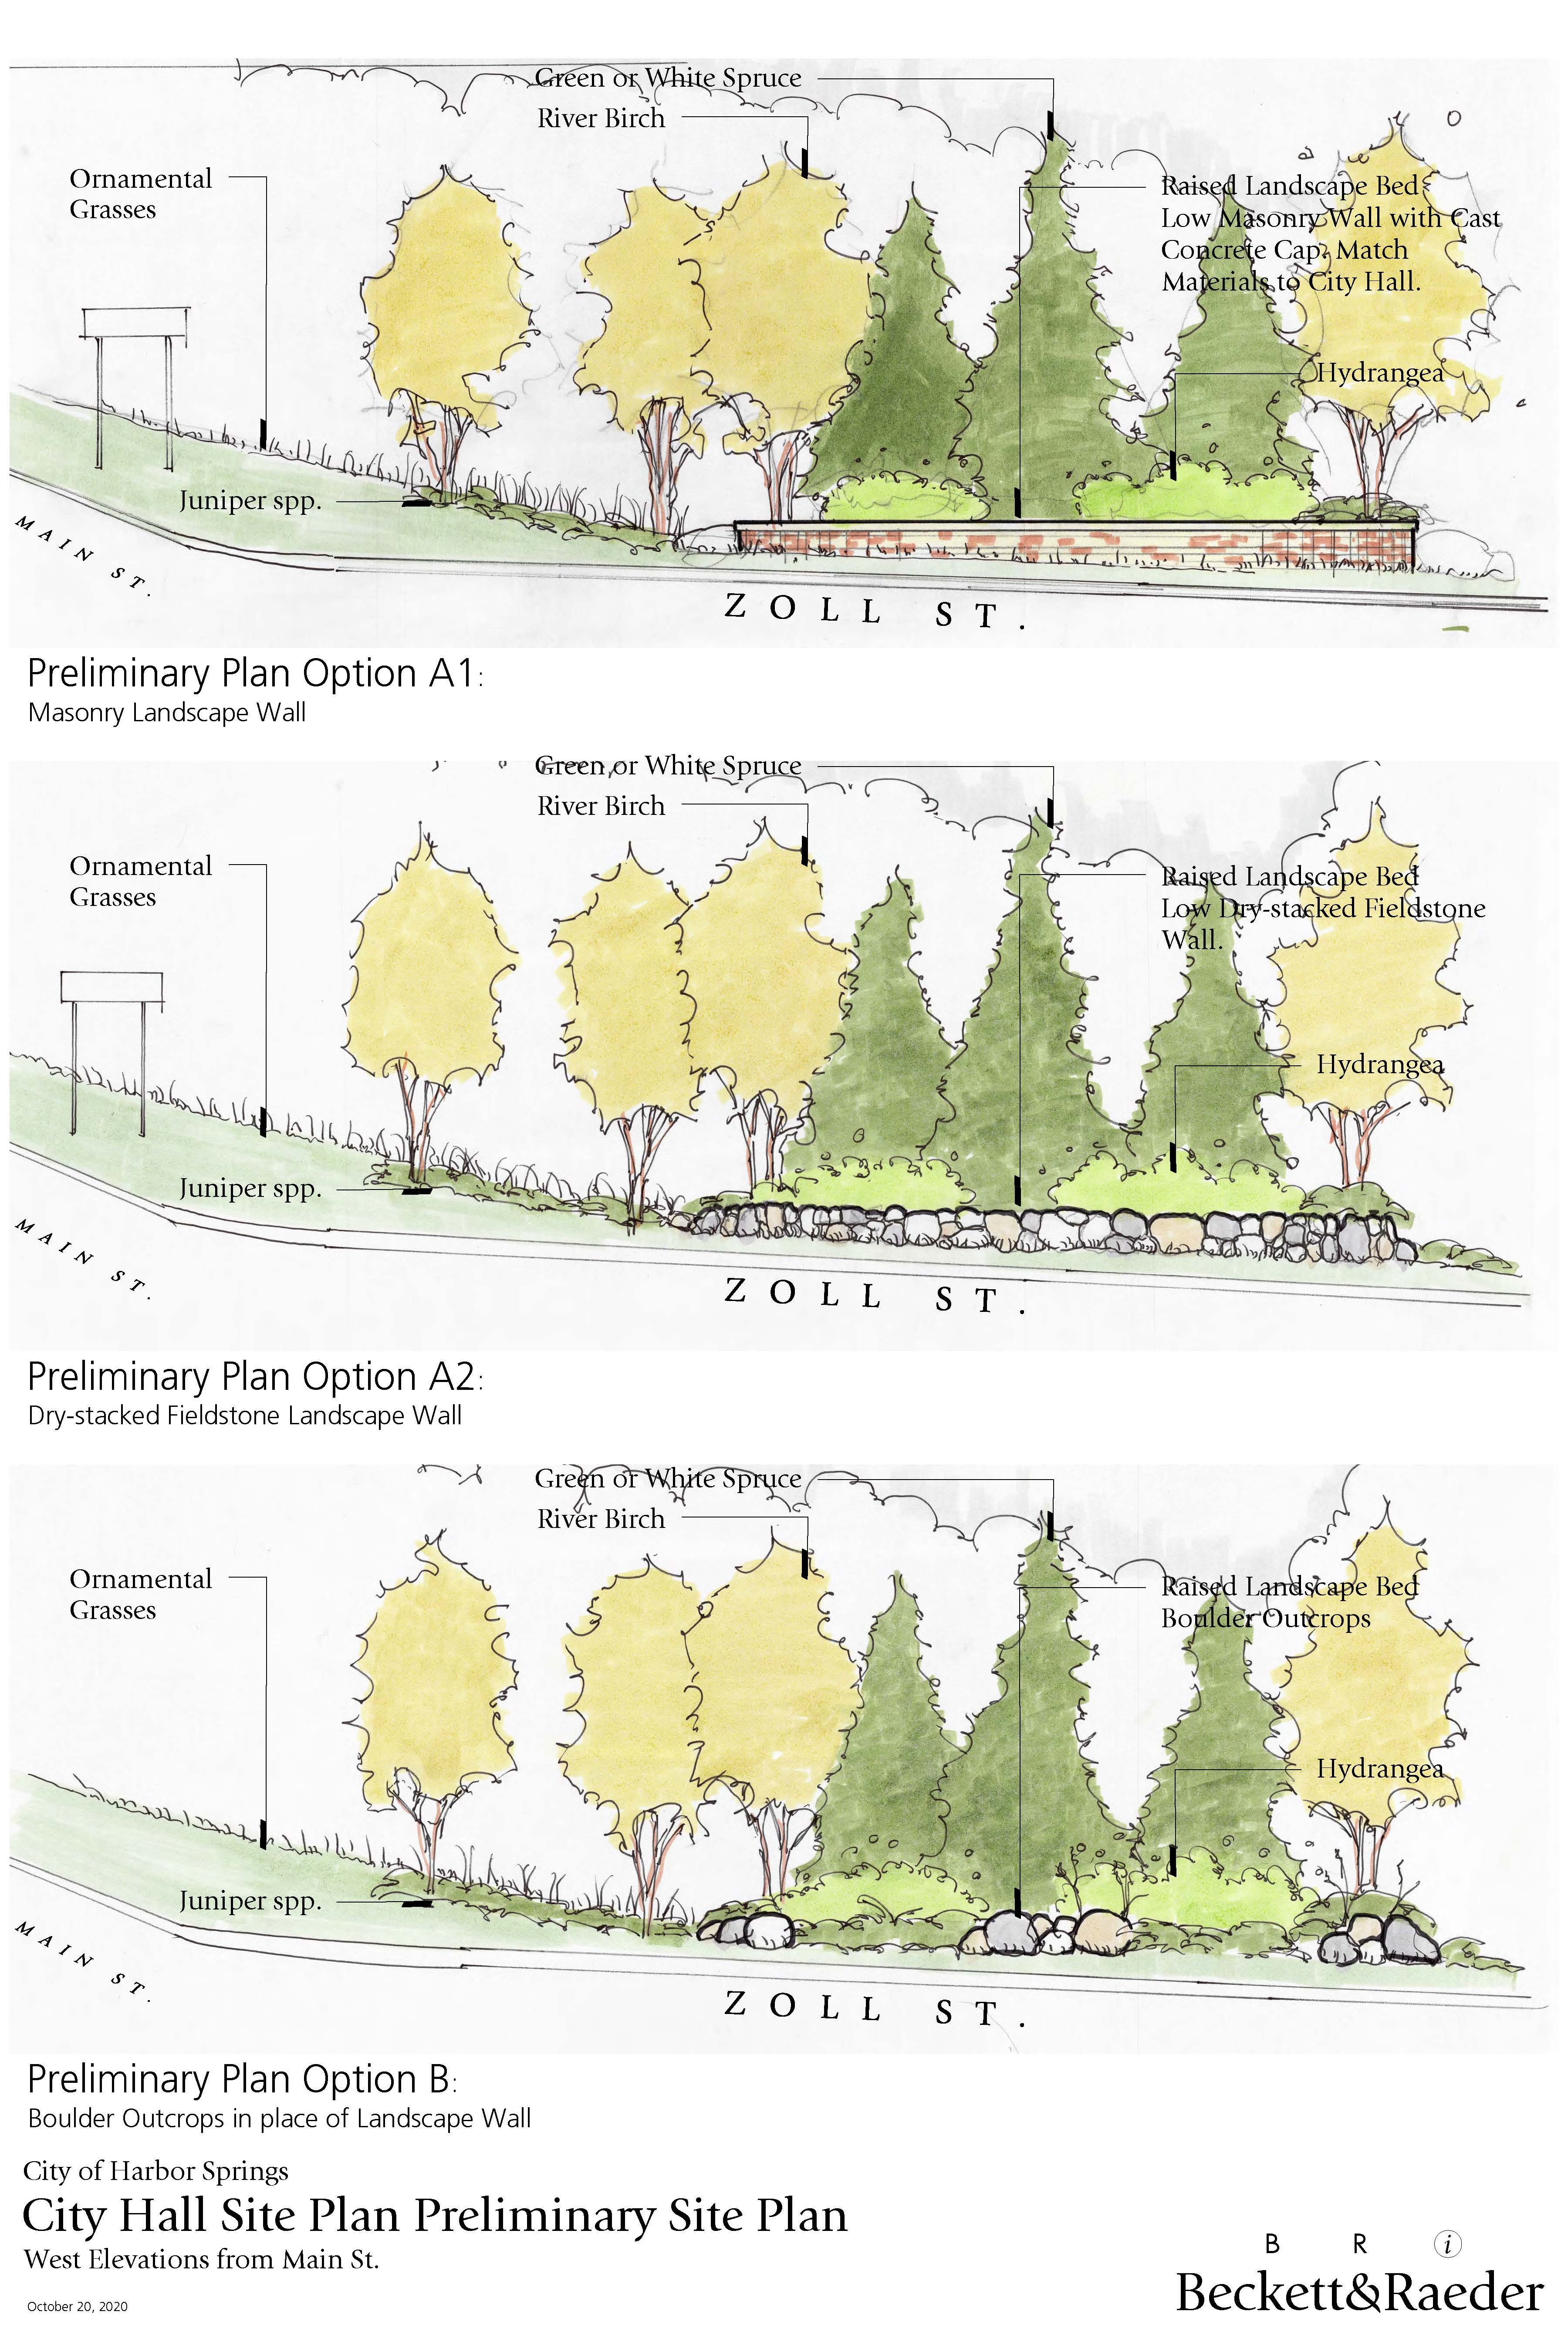 City Hall Site Plan Elevations for Option A and Option B